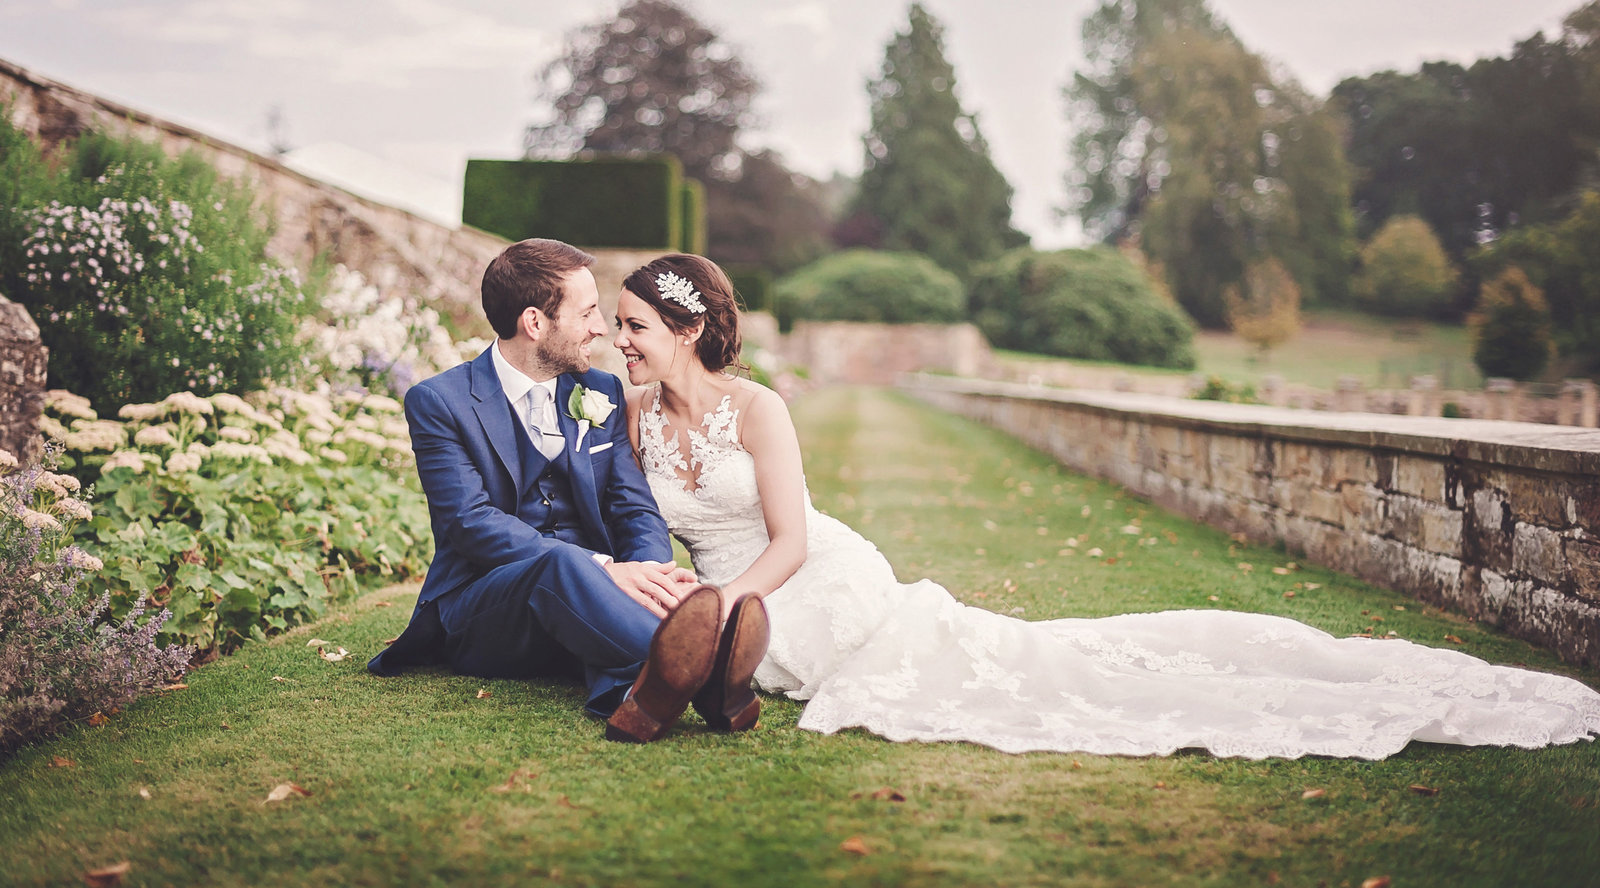 South east wedding photographer uk